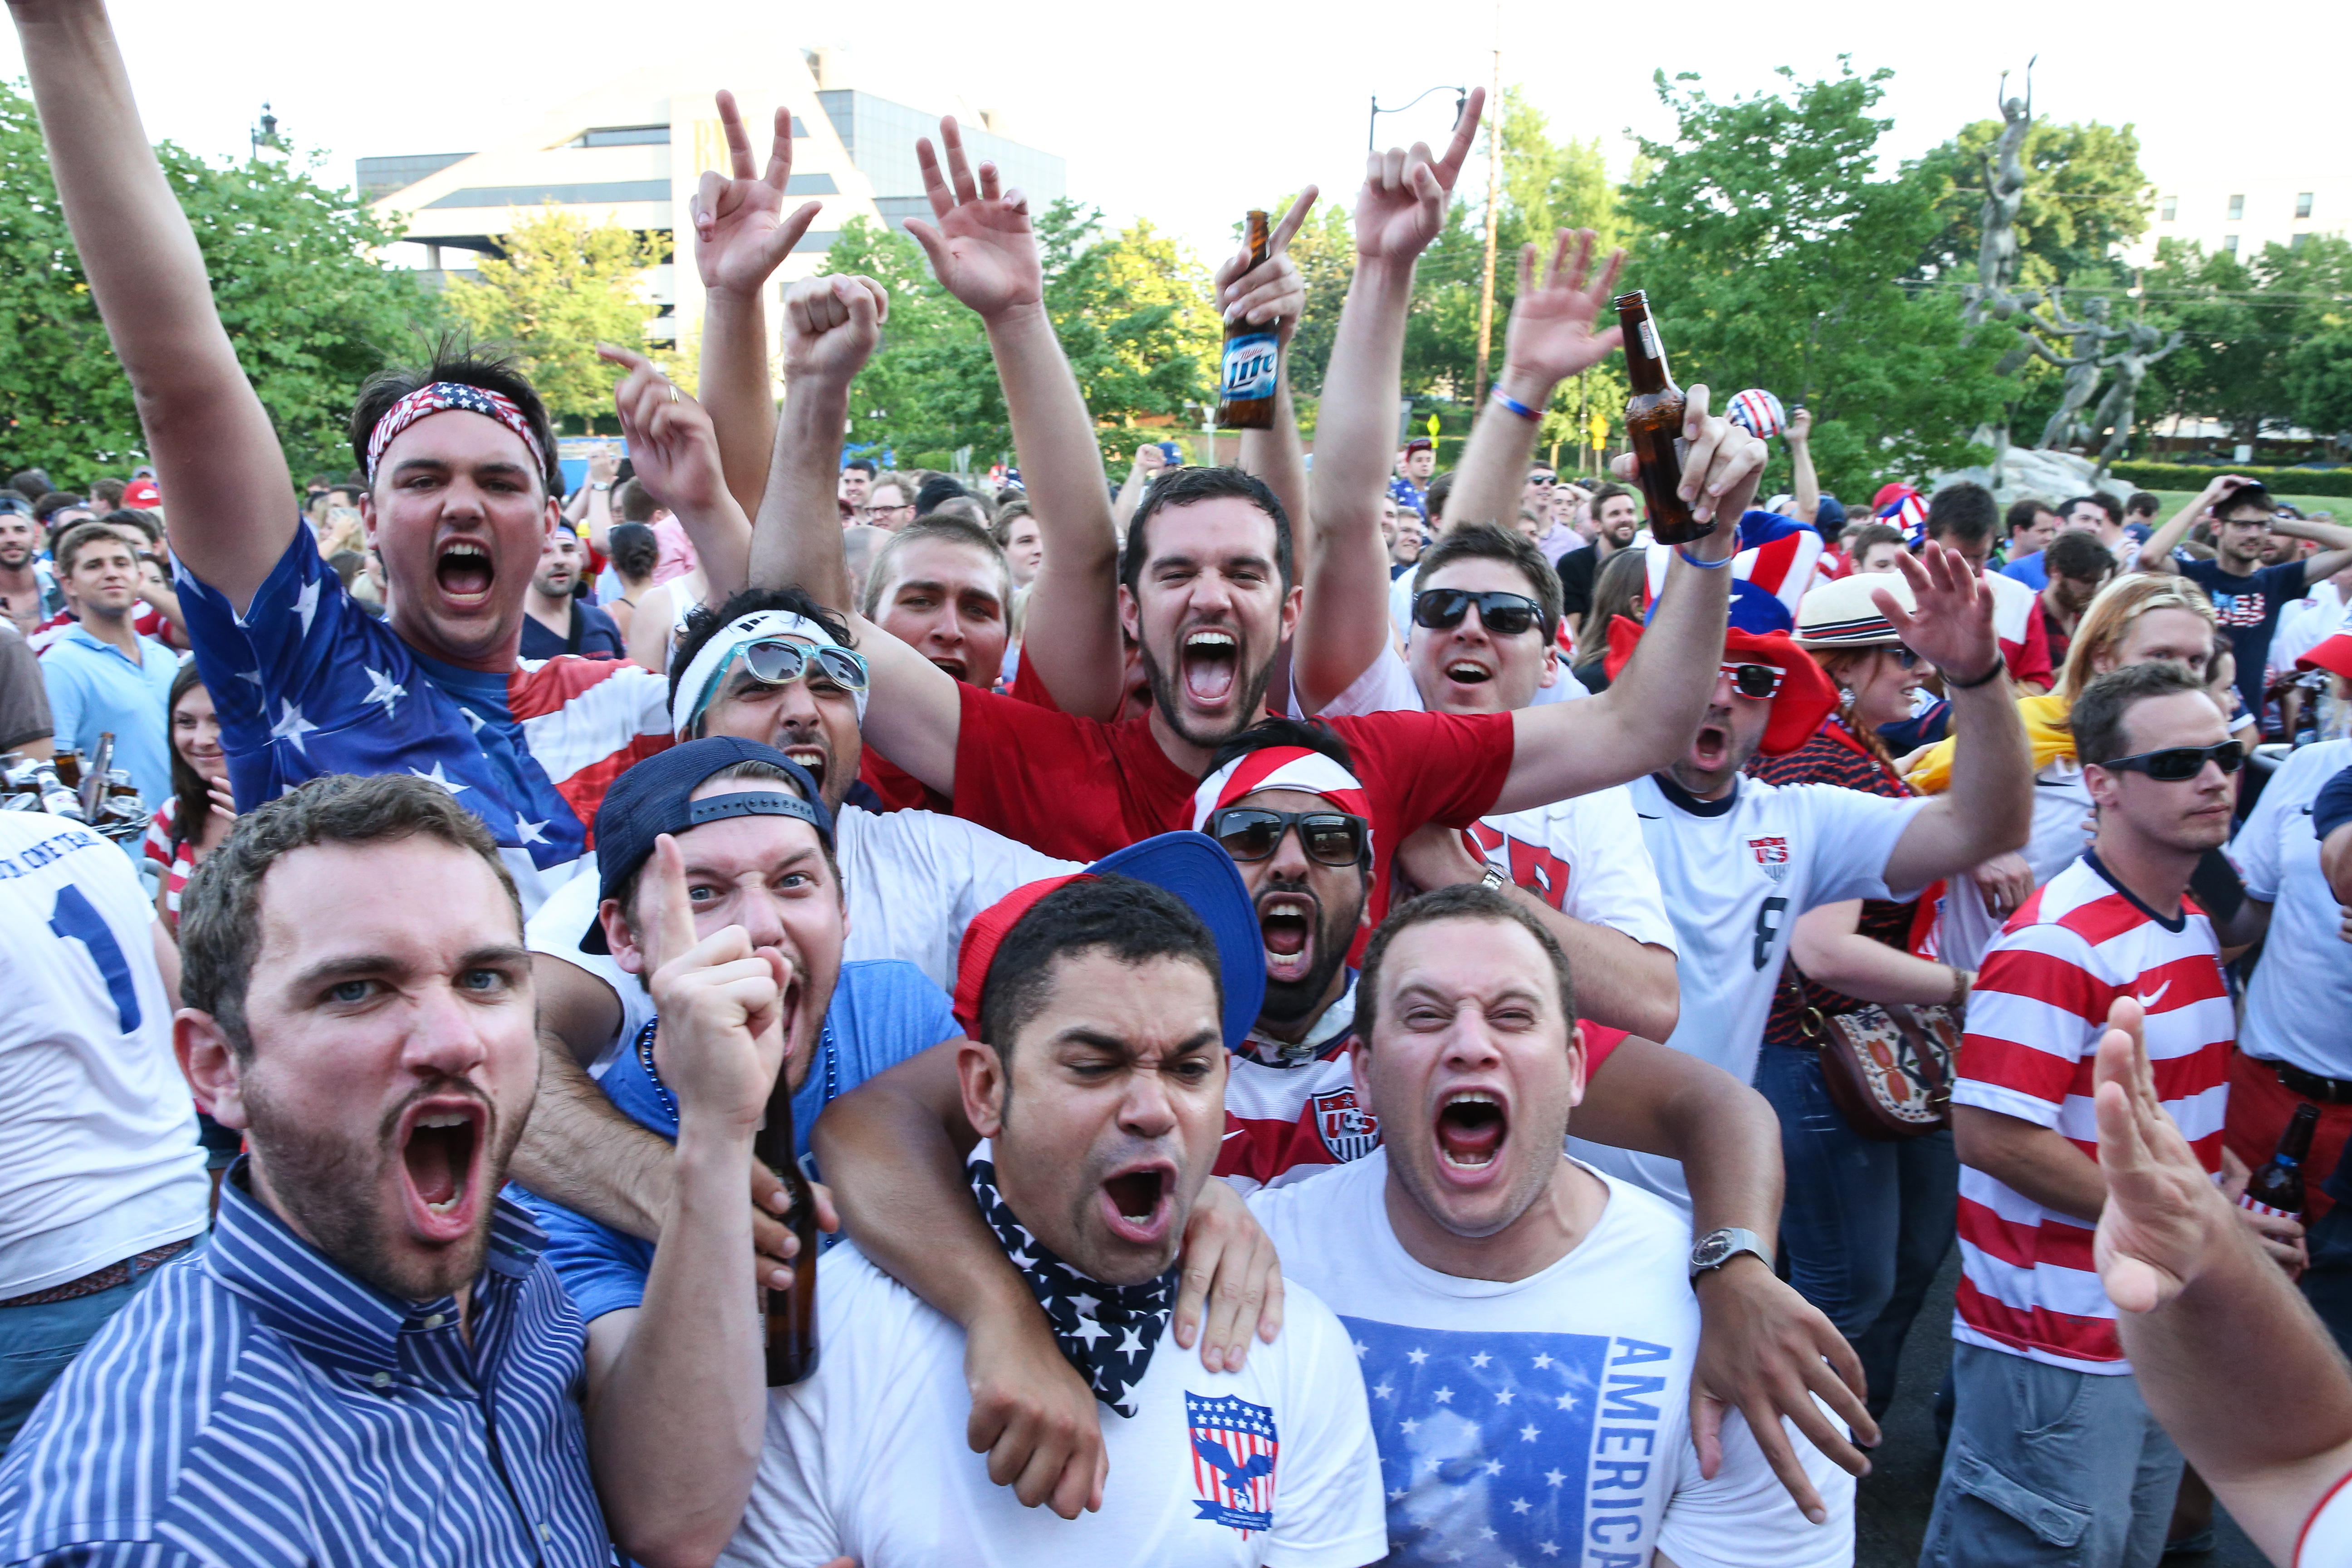 Soccer Fans celebrate the United States win over Ghana in the World Cup opener on June 16, 2014 in Nashville, United States.